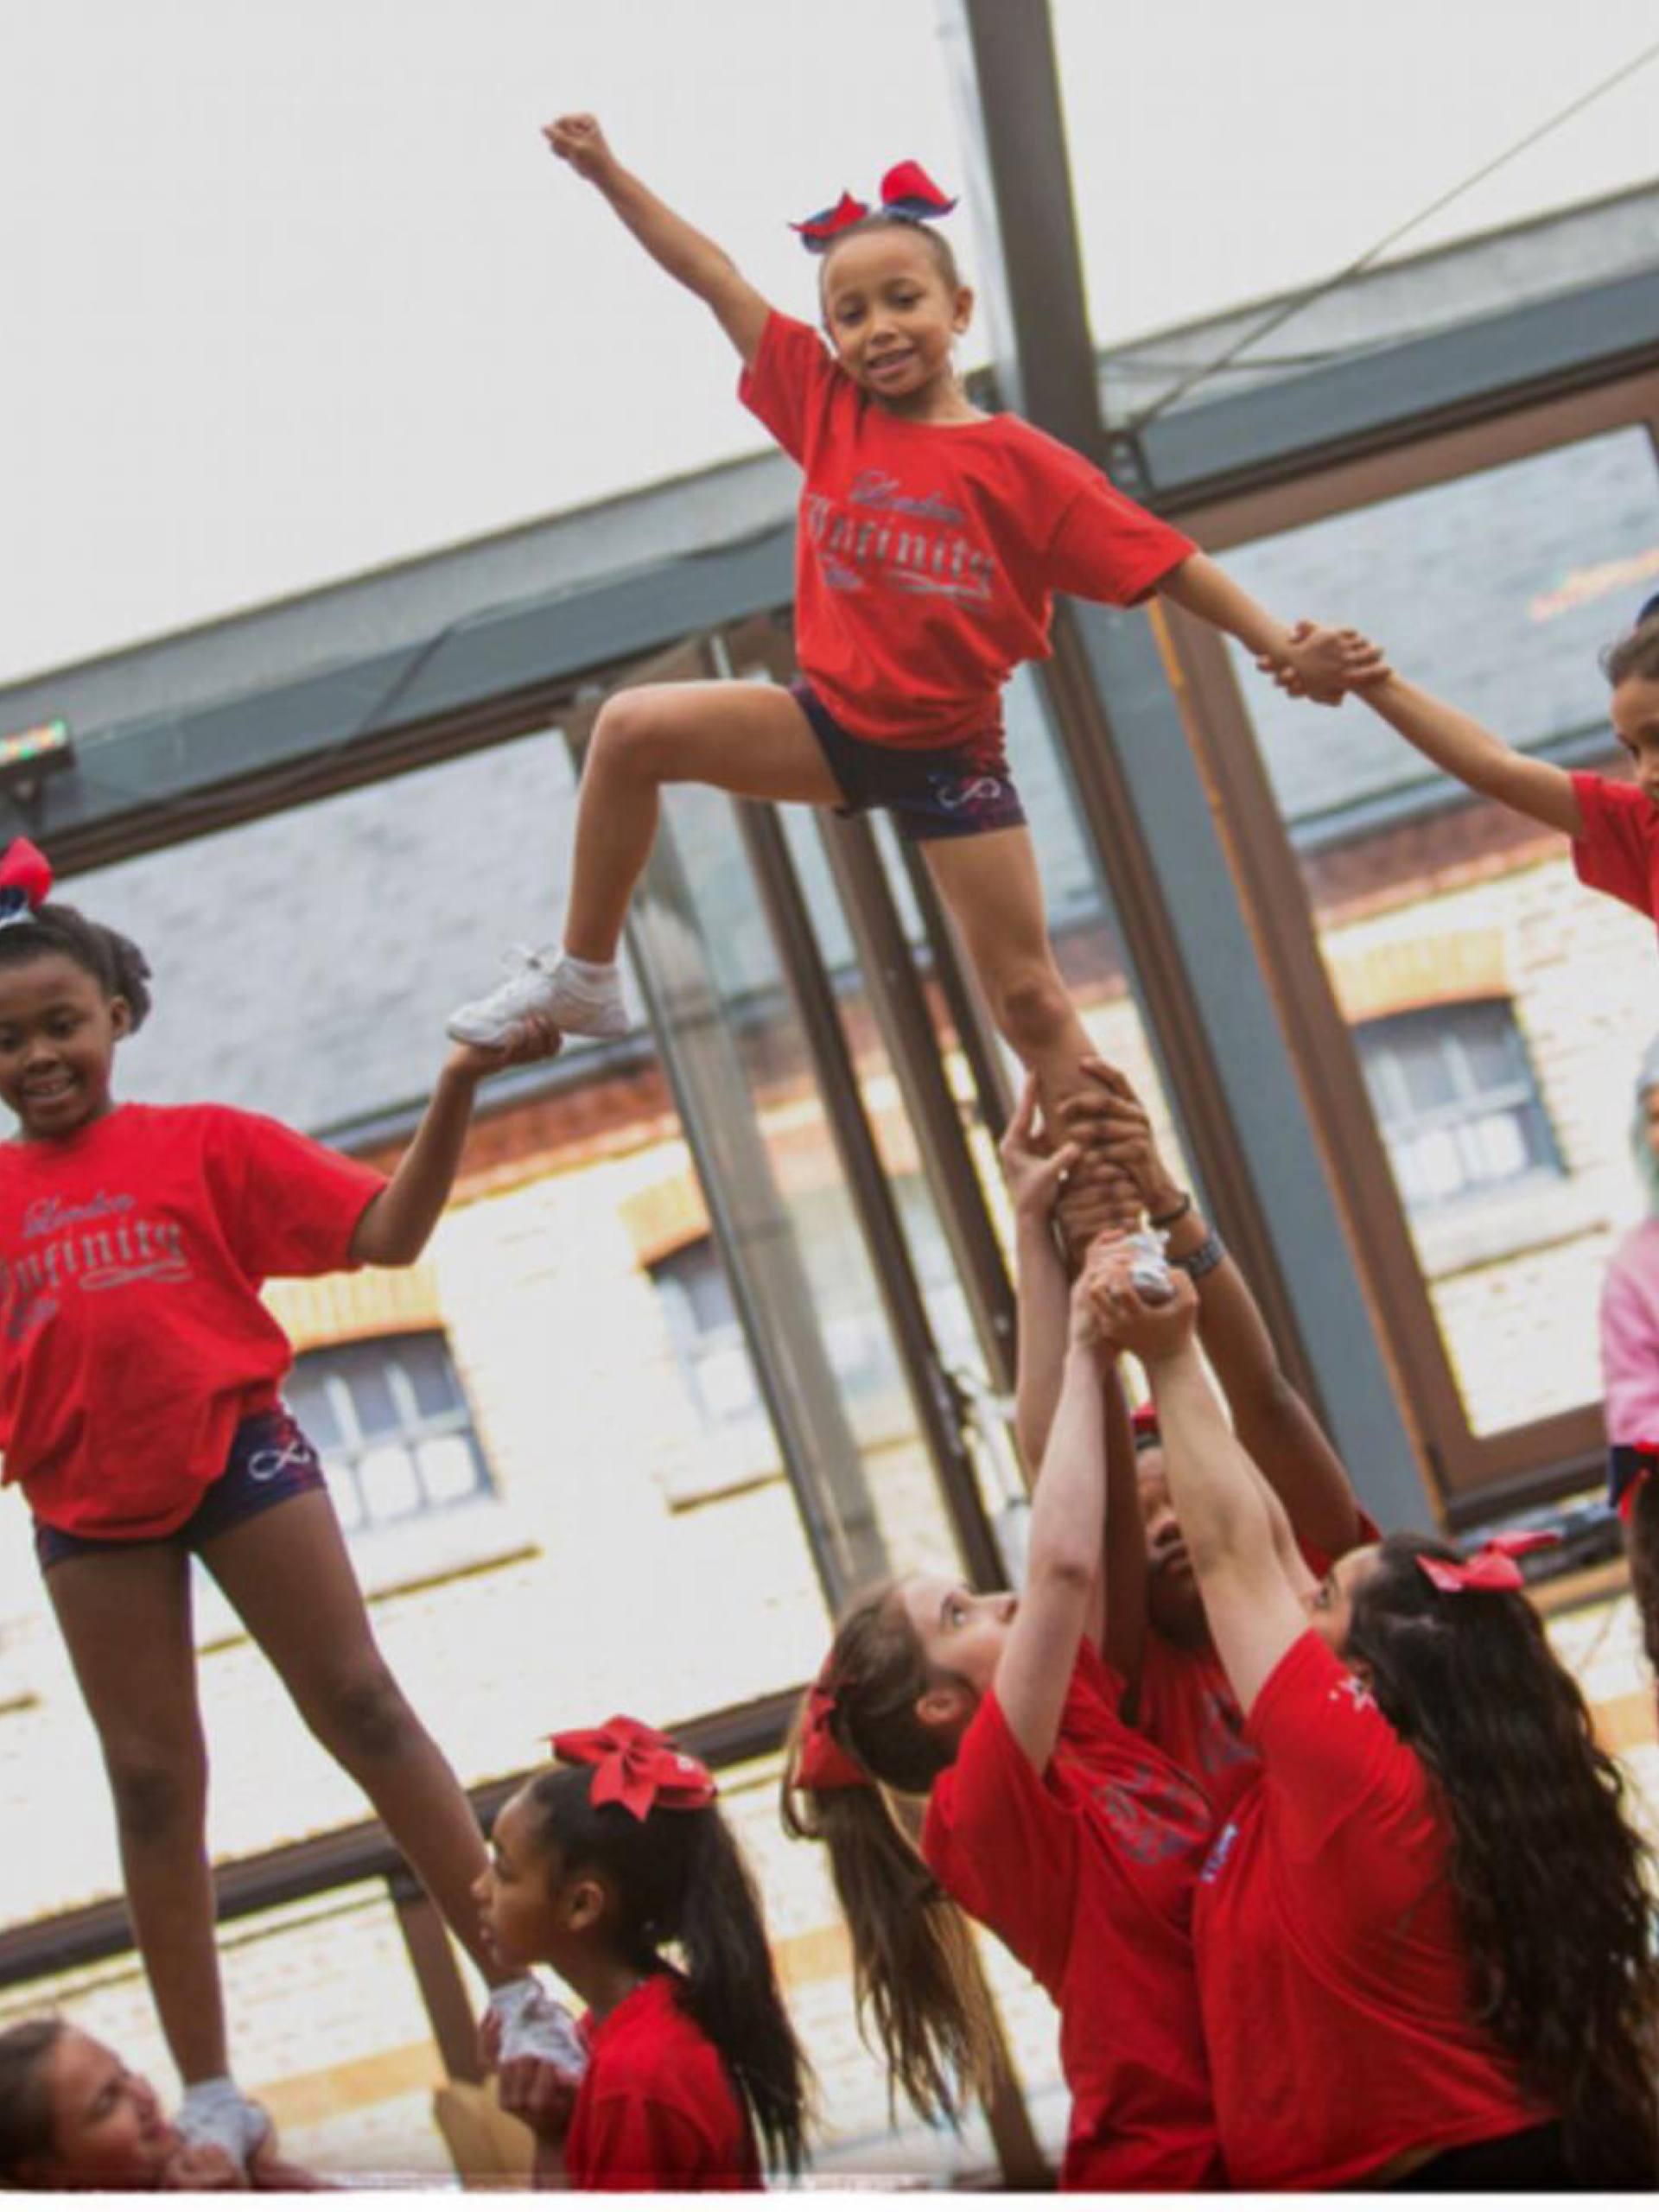 Weekly Cheer & Tumbling Sessions at Somers Town Community Centre